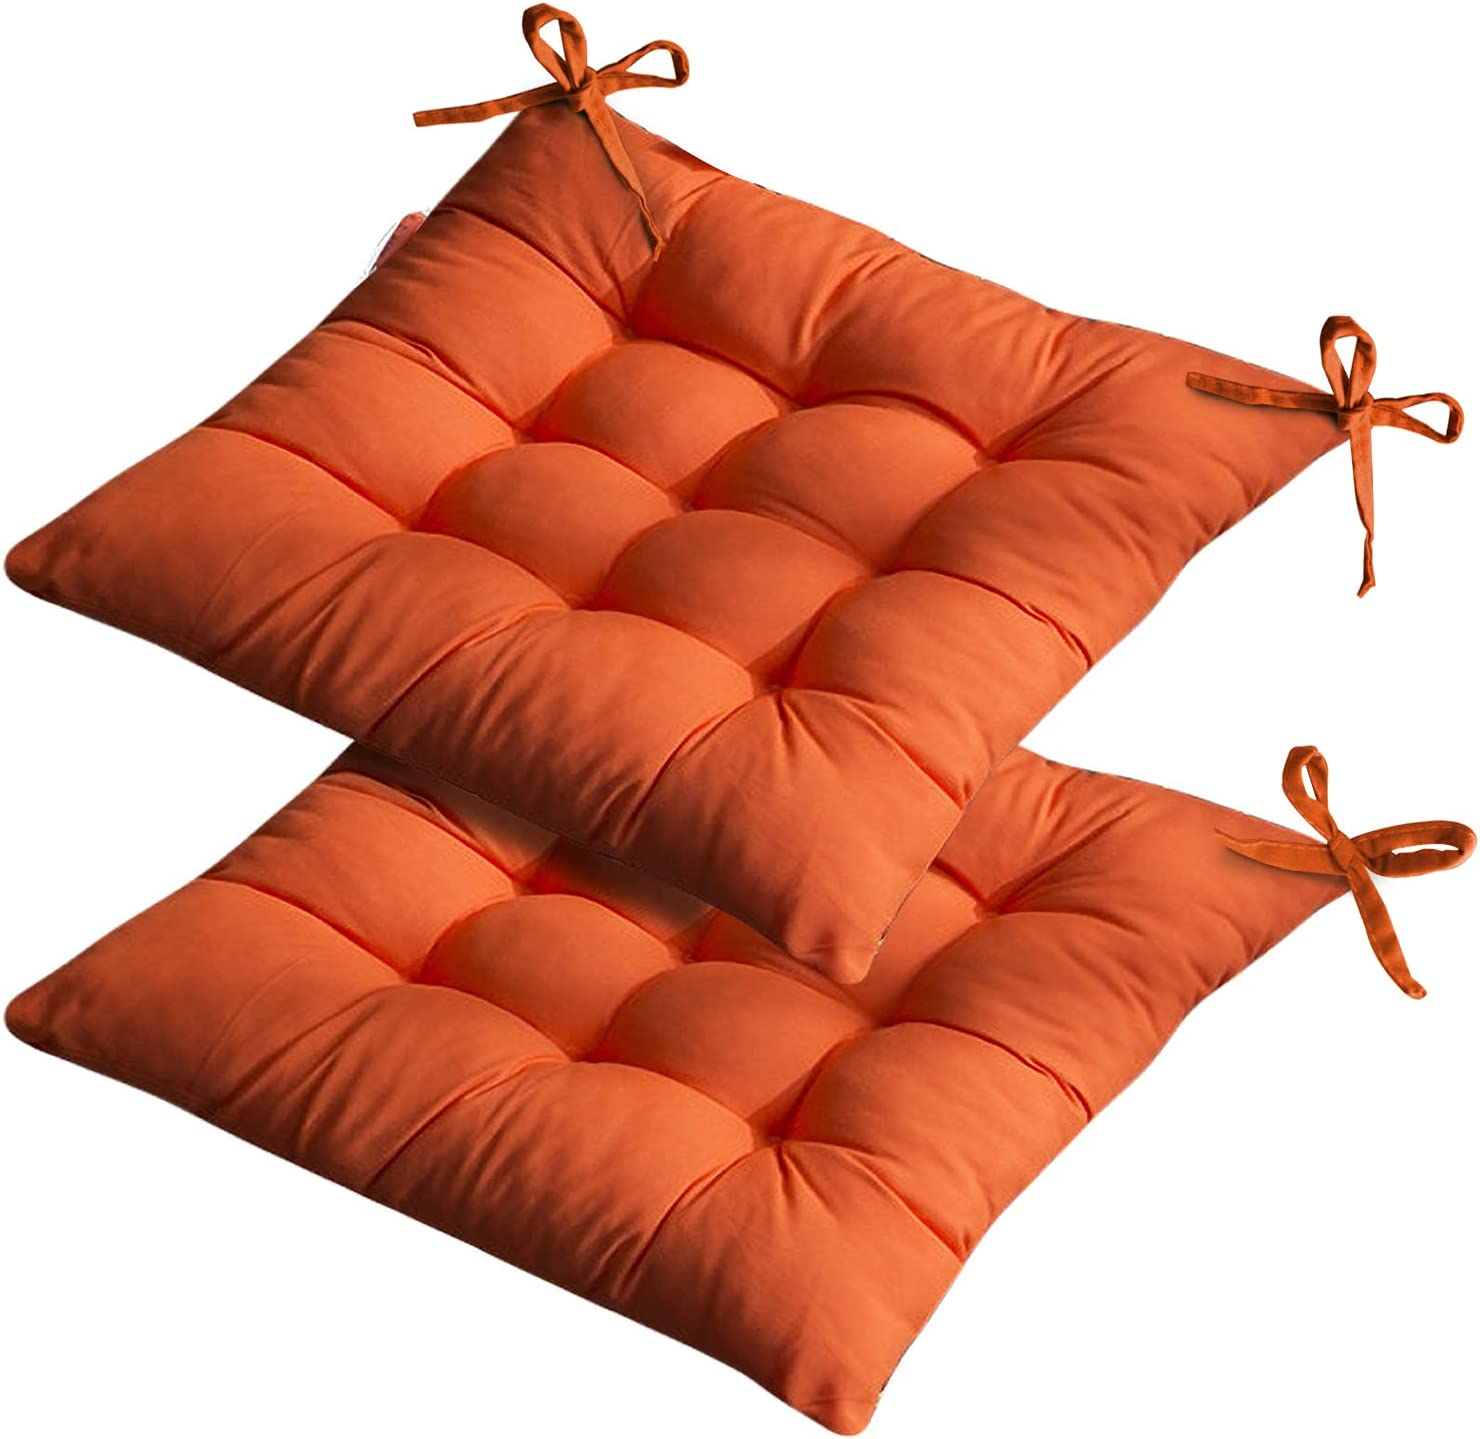 Set of 2 Outdoor Chair Cushions, Thick Soft and Comfortable Dining Chair Cushions with Ties for Indoor Outdoor Garden Car Office Patio Furniture Decoration. (15.7515.75 inch) (Orange)